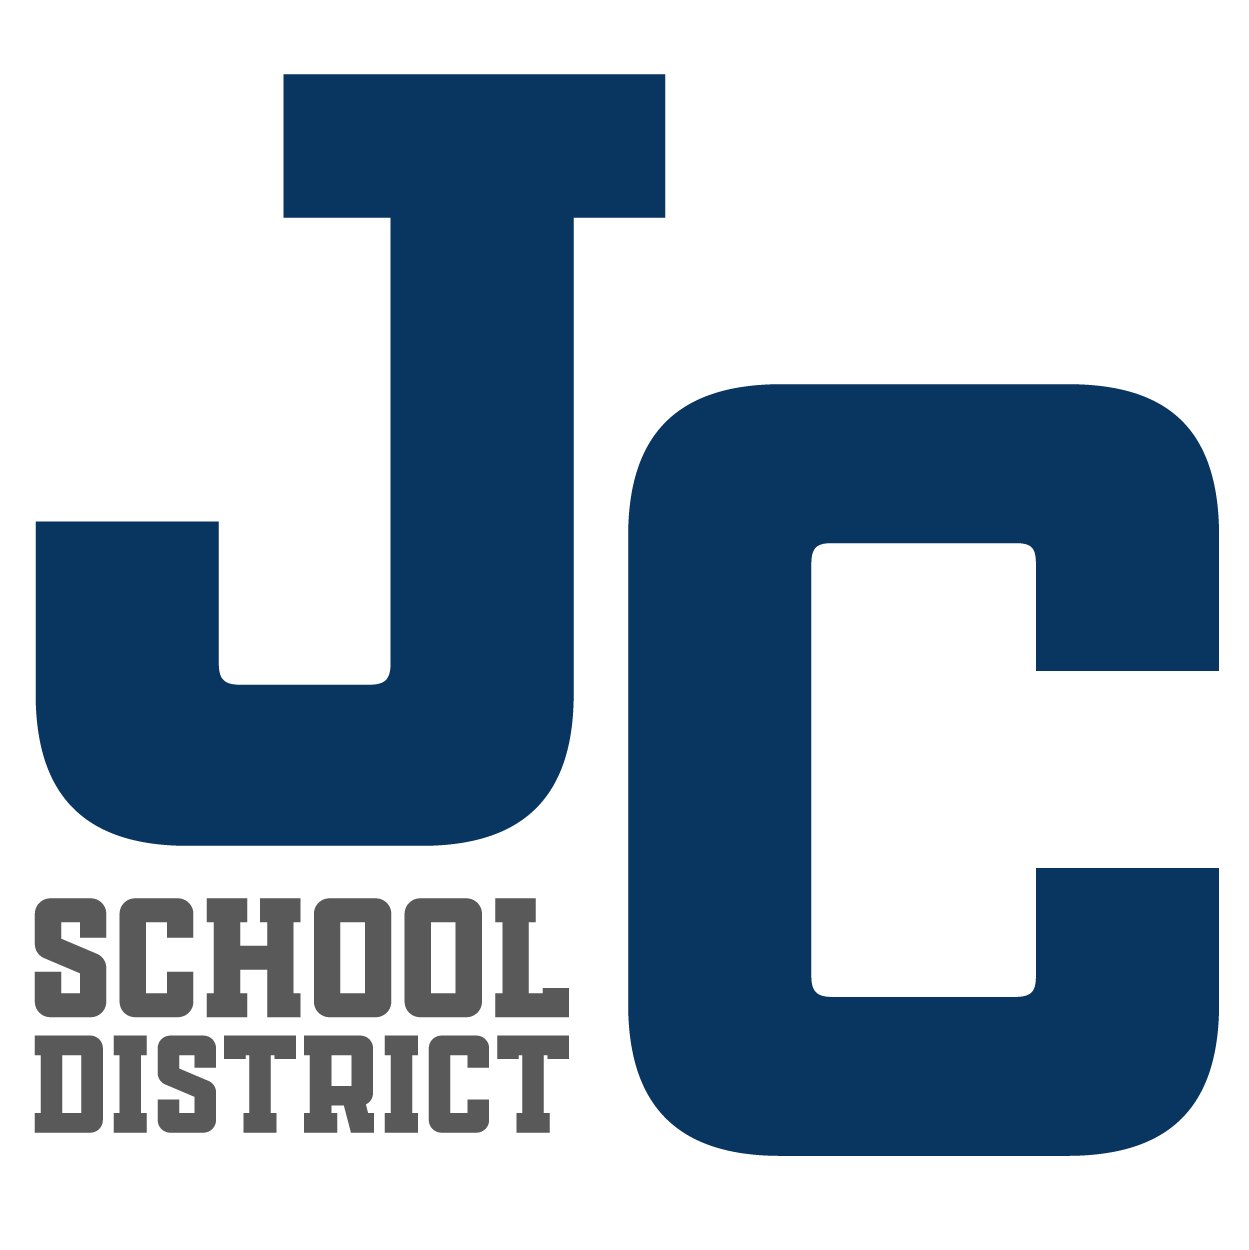 JC School District